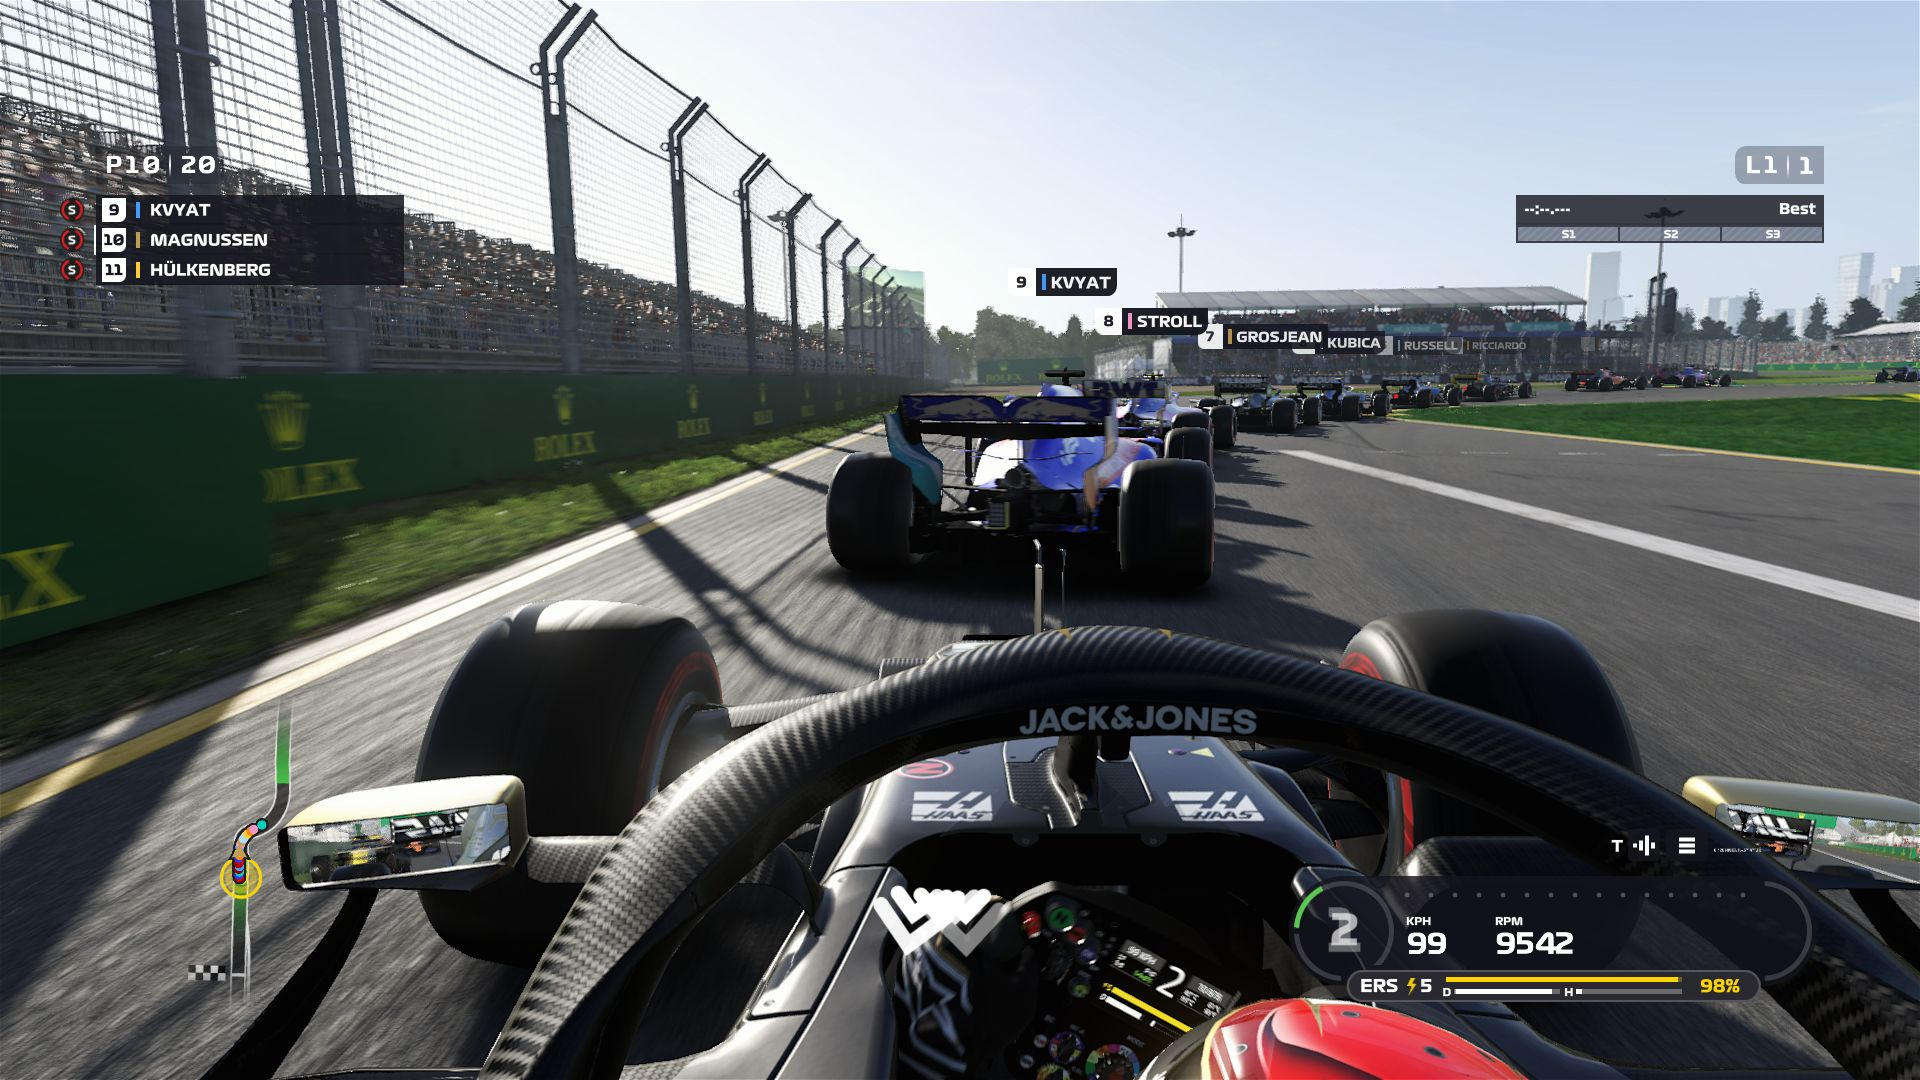 F1 2019 Notebook and Desktop Benchmarks - NotebookCheck net Reviews